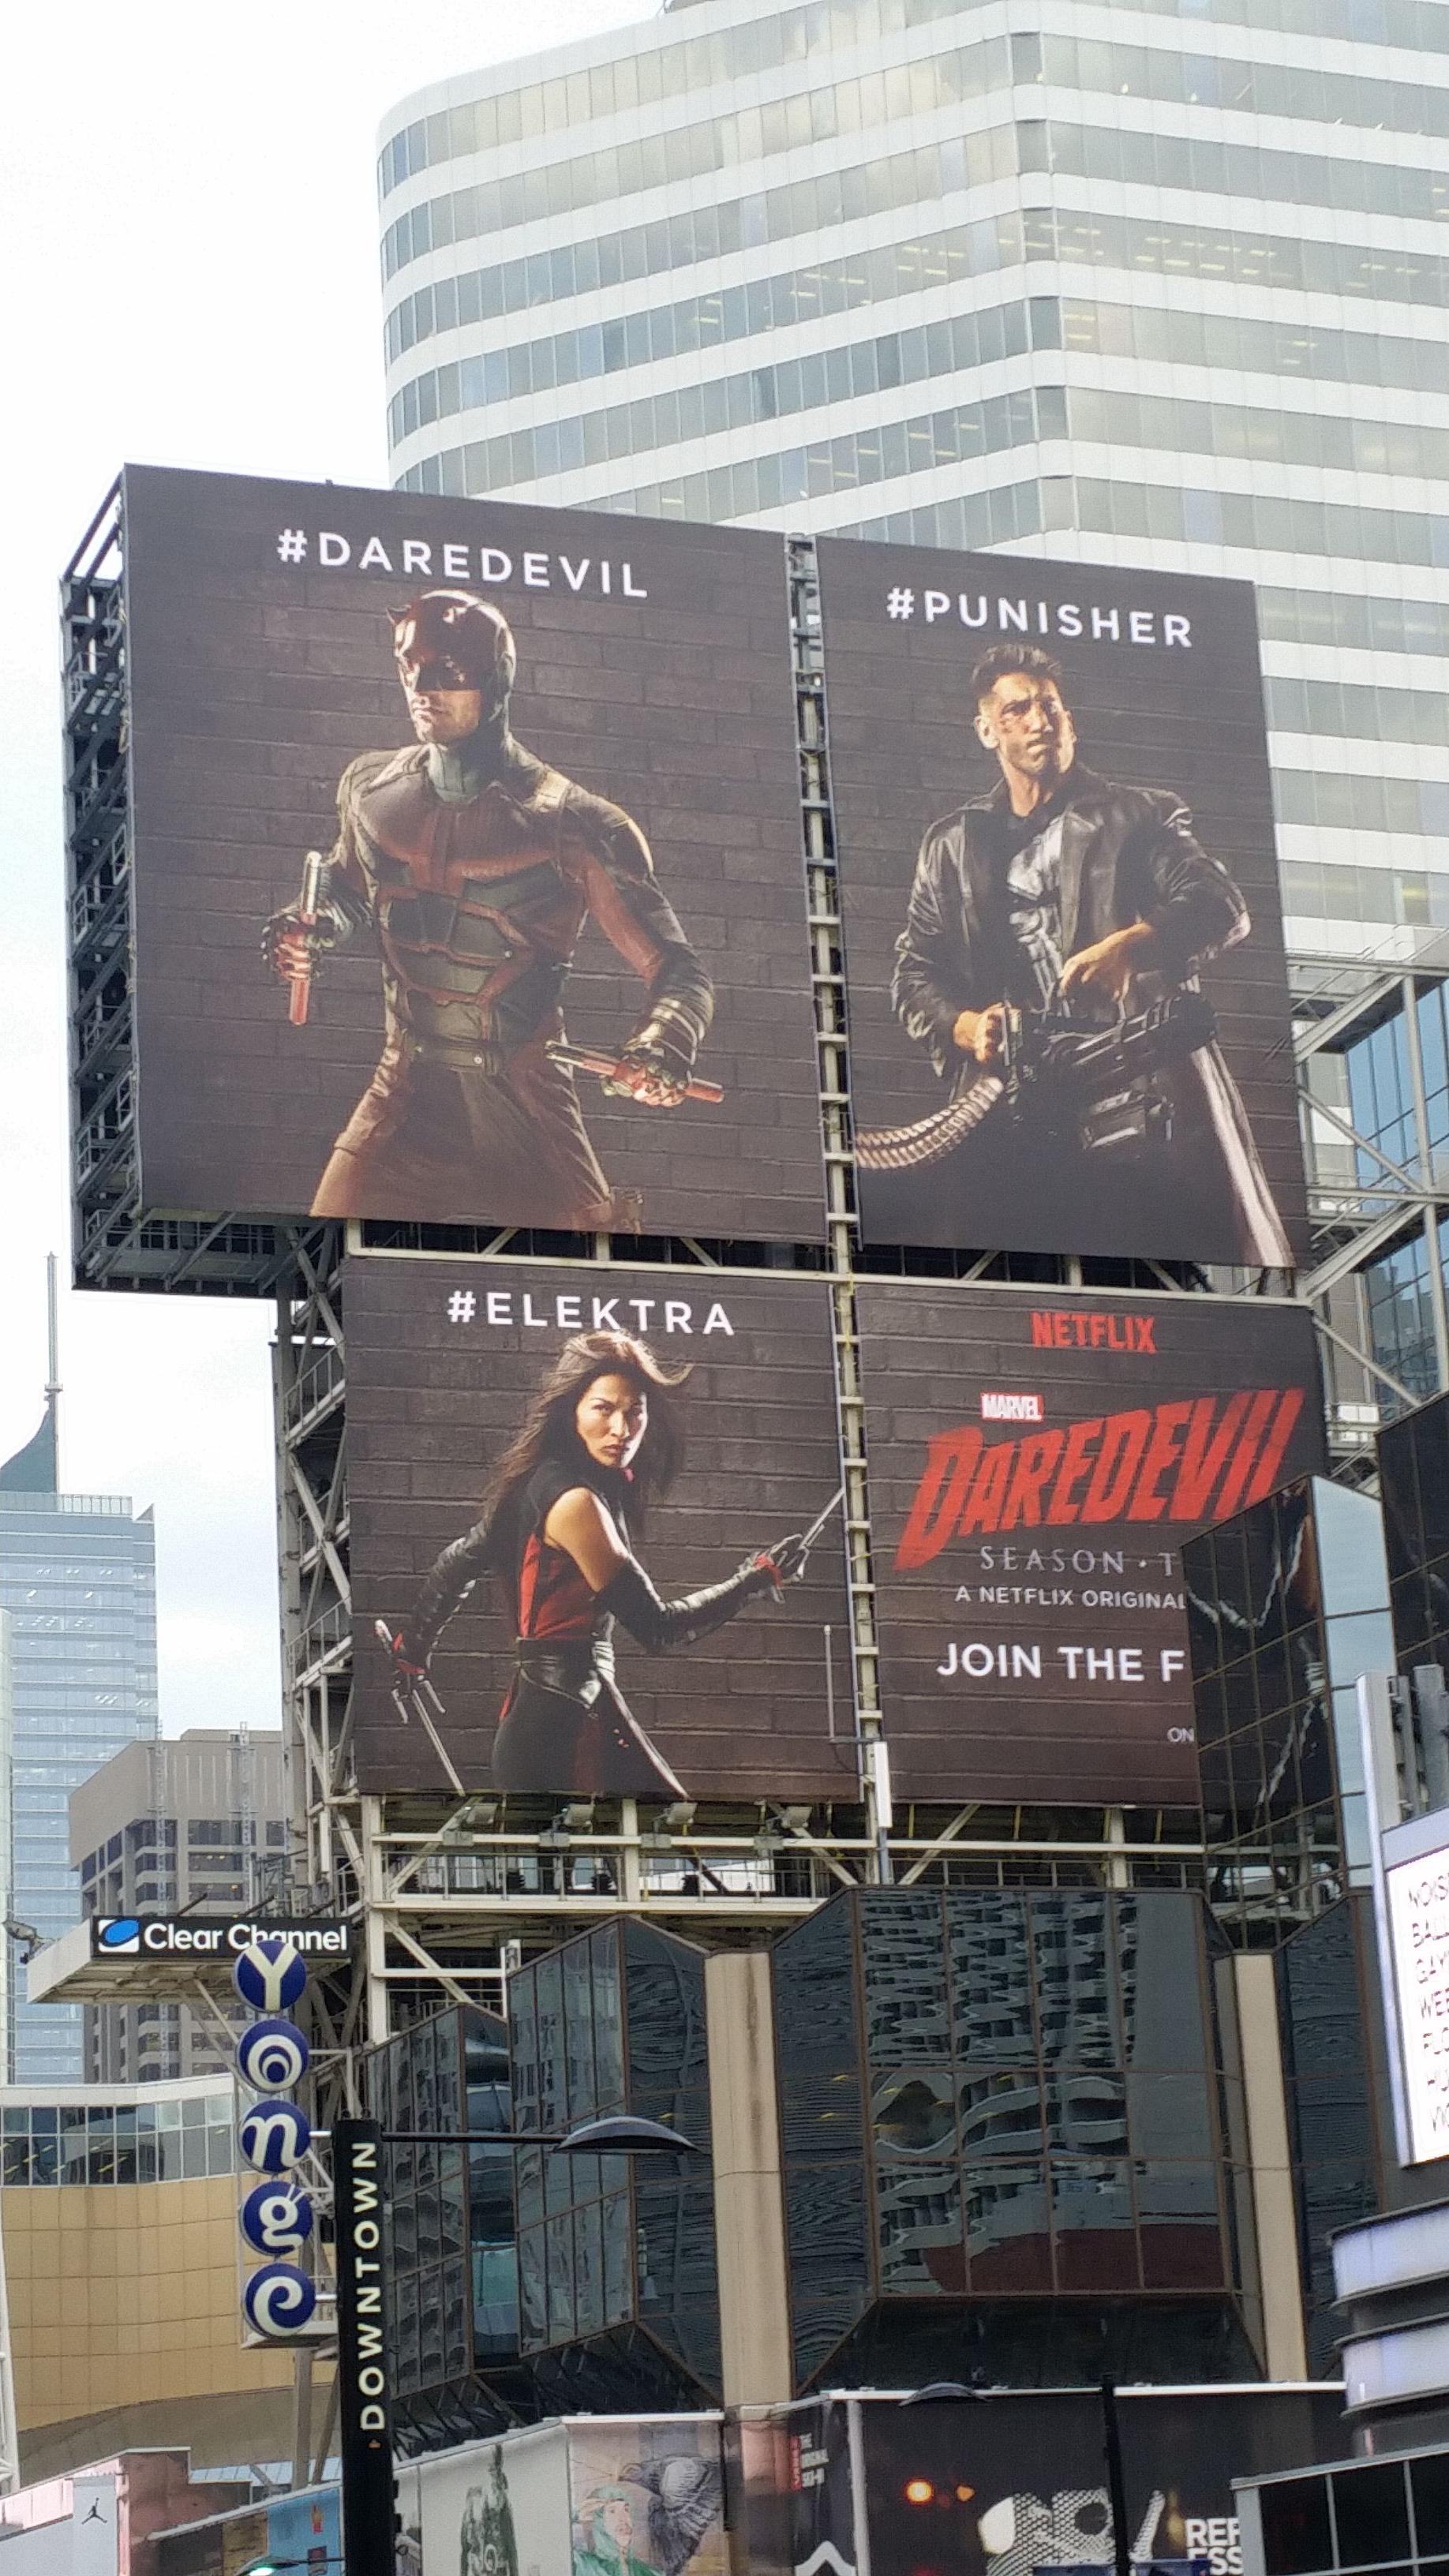 Billboard posters reveal new costumes for Daredevil, Elektra and The Punisher